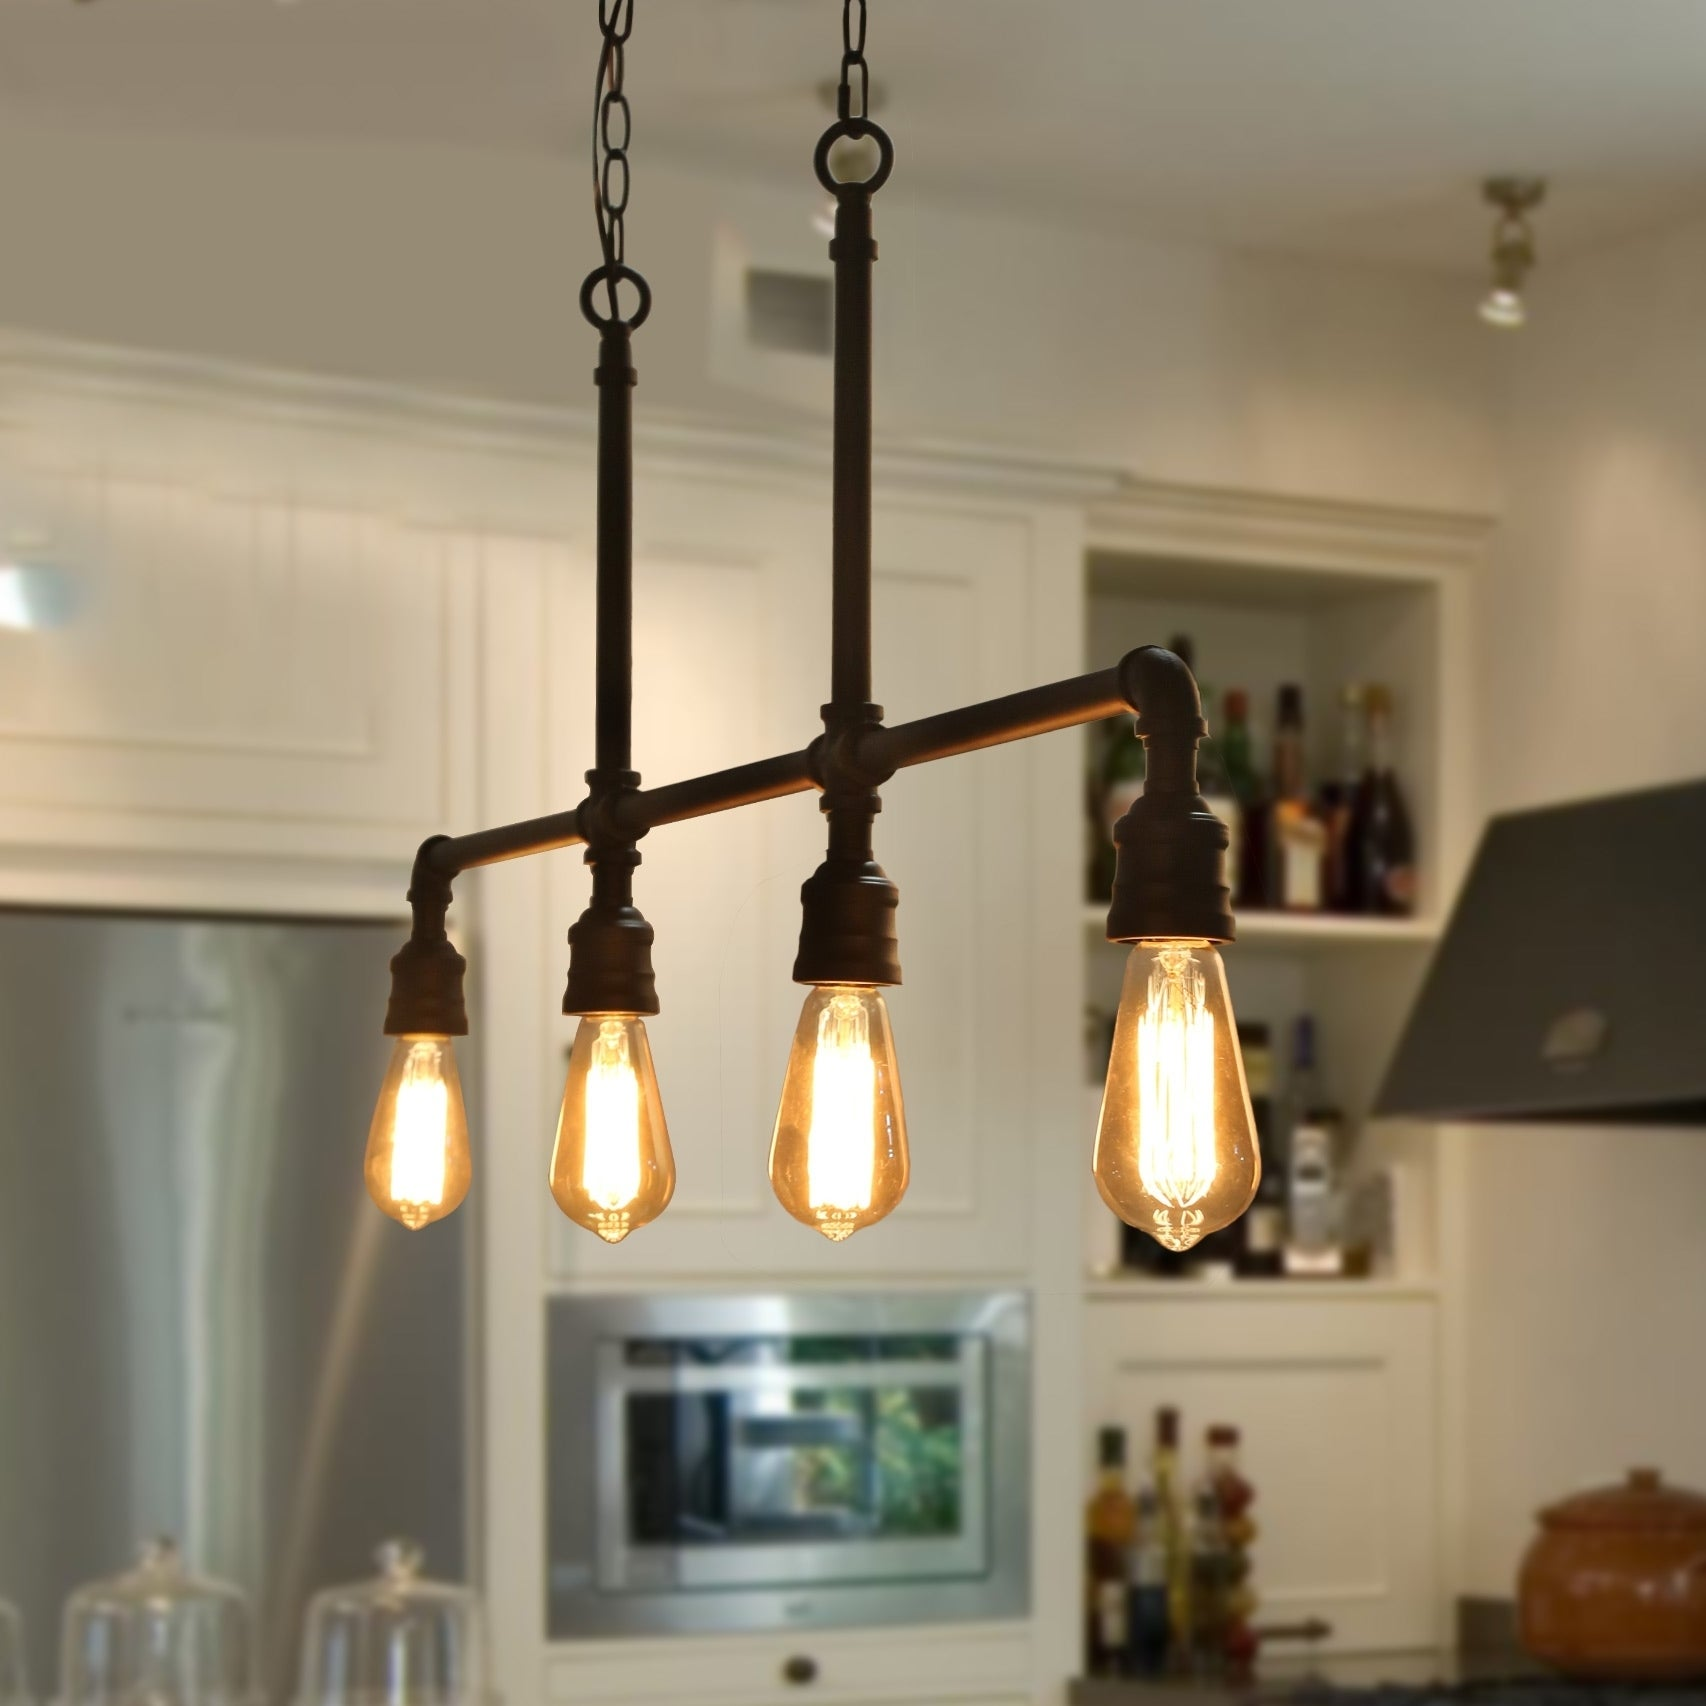 4 Light Kitchen Island Lighting Pendant Lights For Dining Room N A